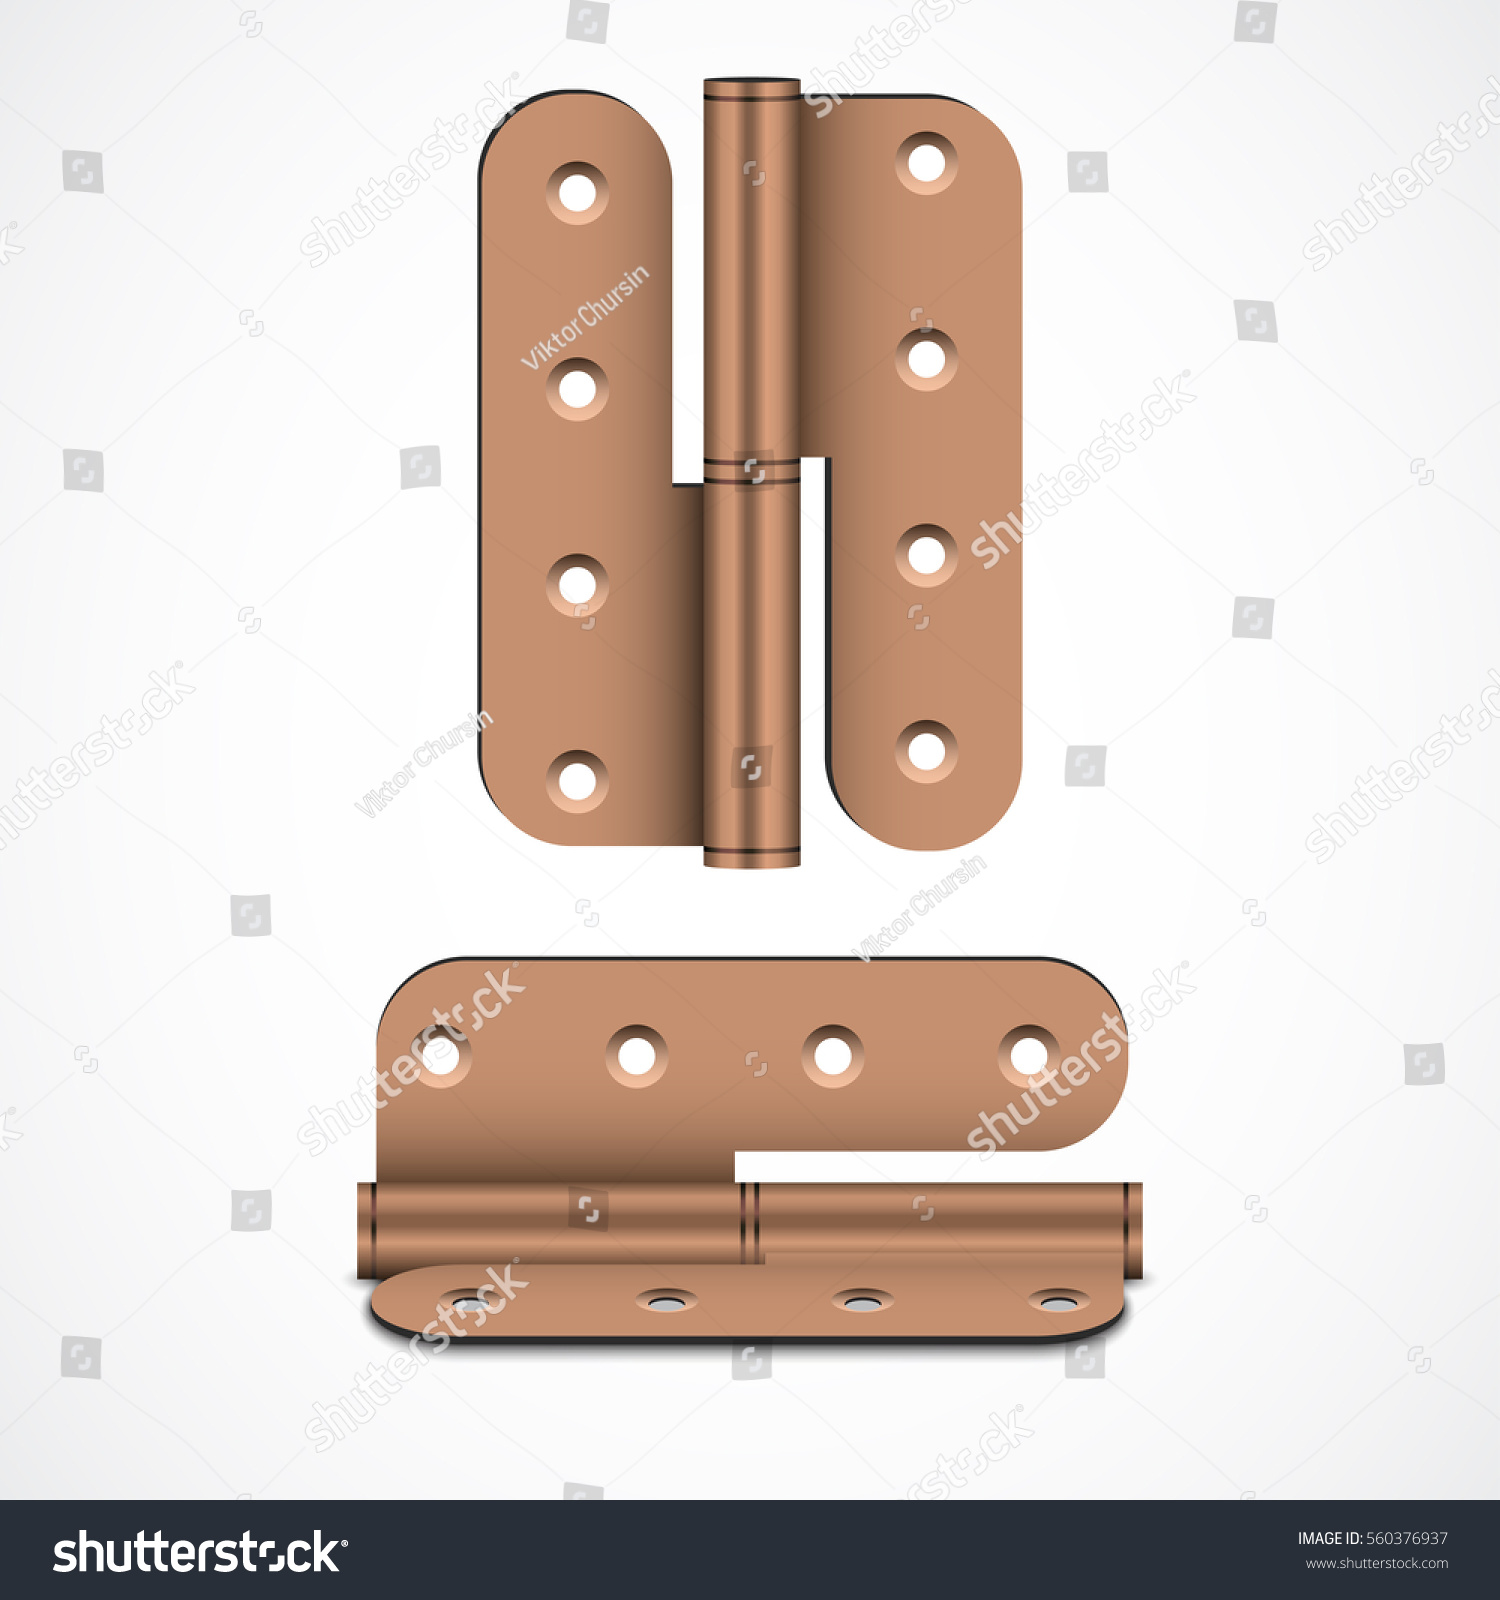 Bronze Door Hinges. Ironmongery. Construction And Finishing Materials.  Vector Illustration On White Background